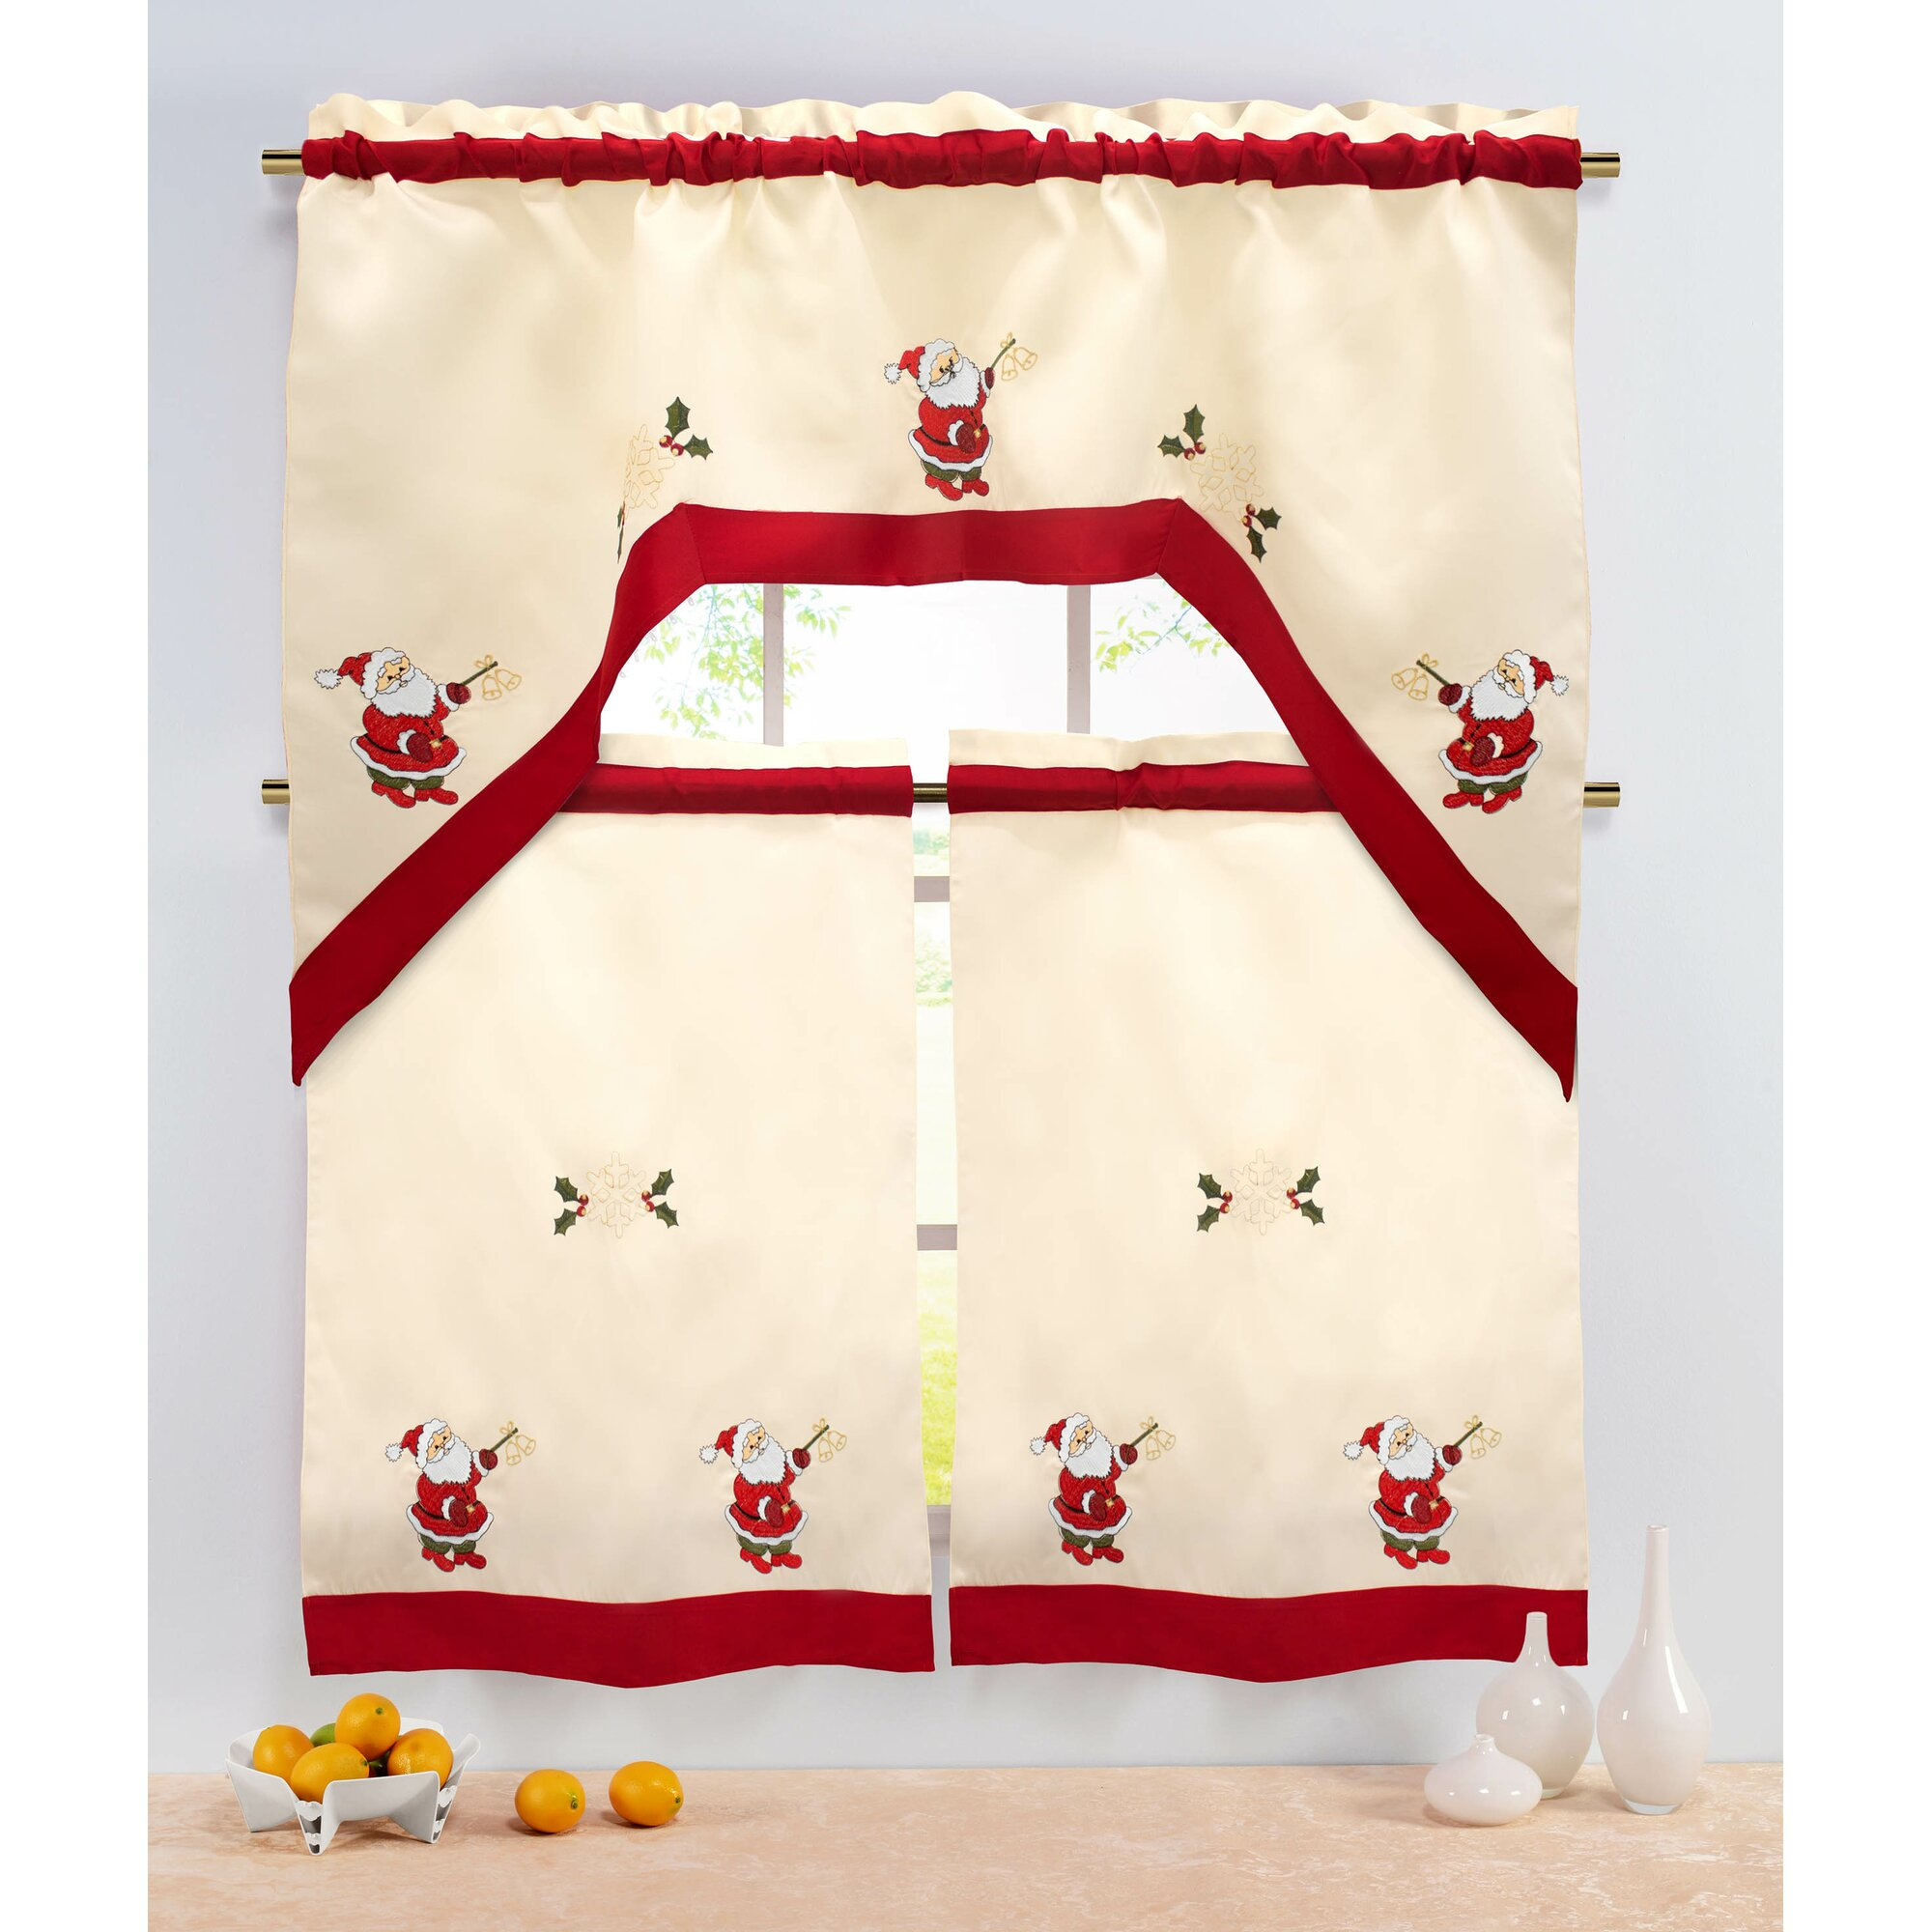 Hamilton 3 Piece Kitchen Curtain Set Available In 4: The Holiday Aisle Holiday Santa Embroidered Sheer 3 Piece